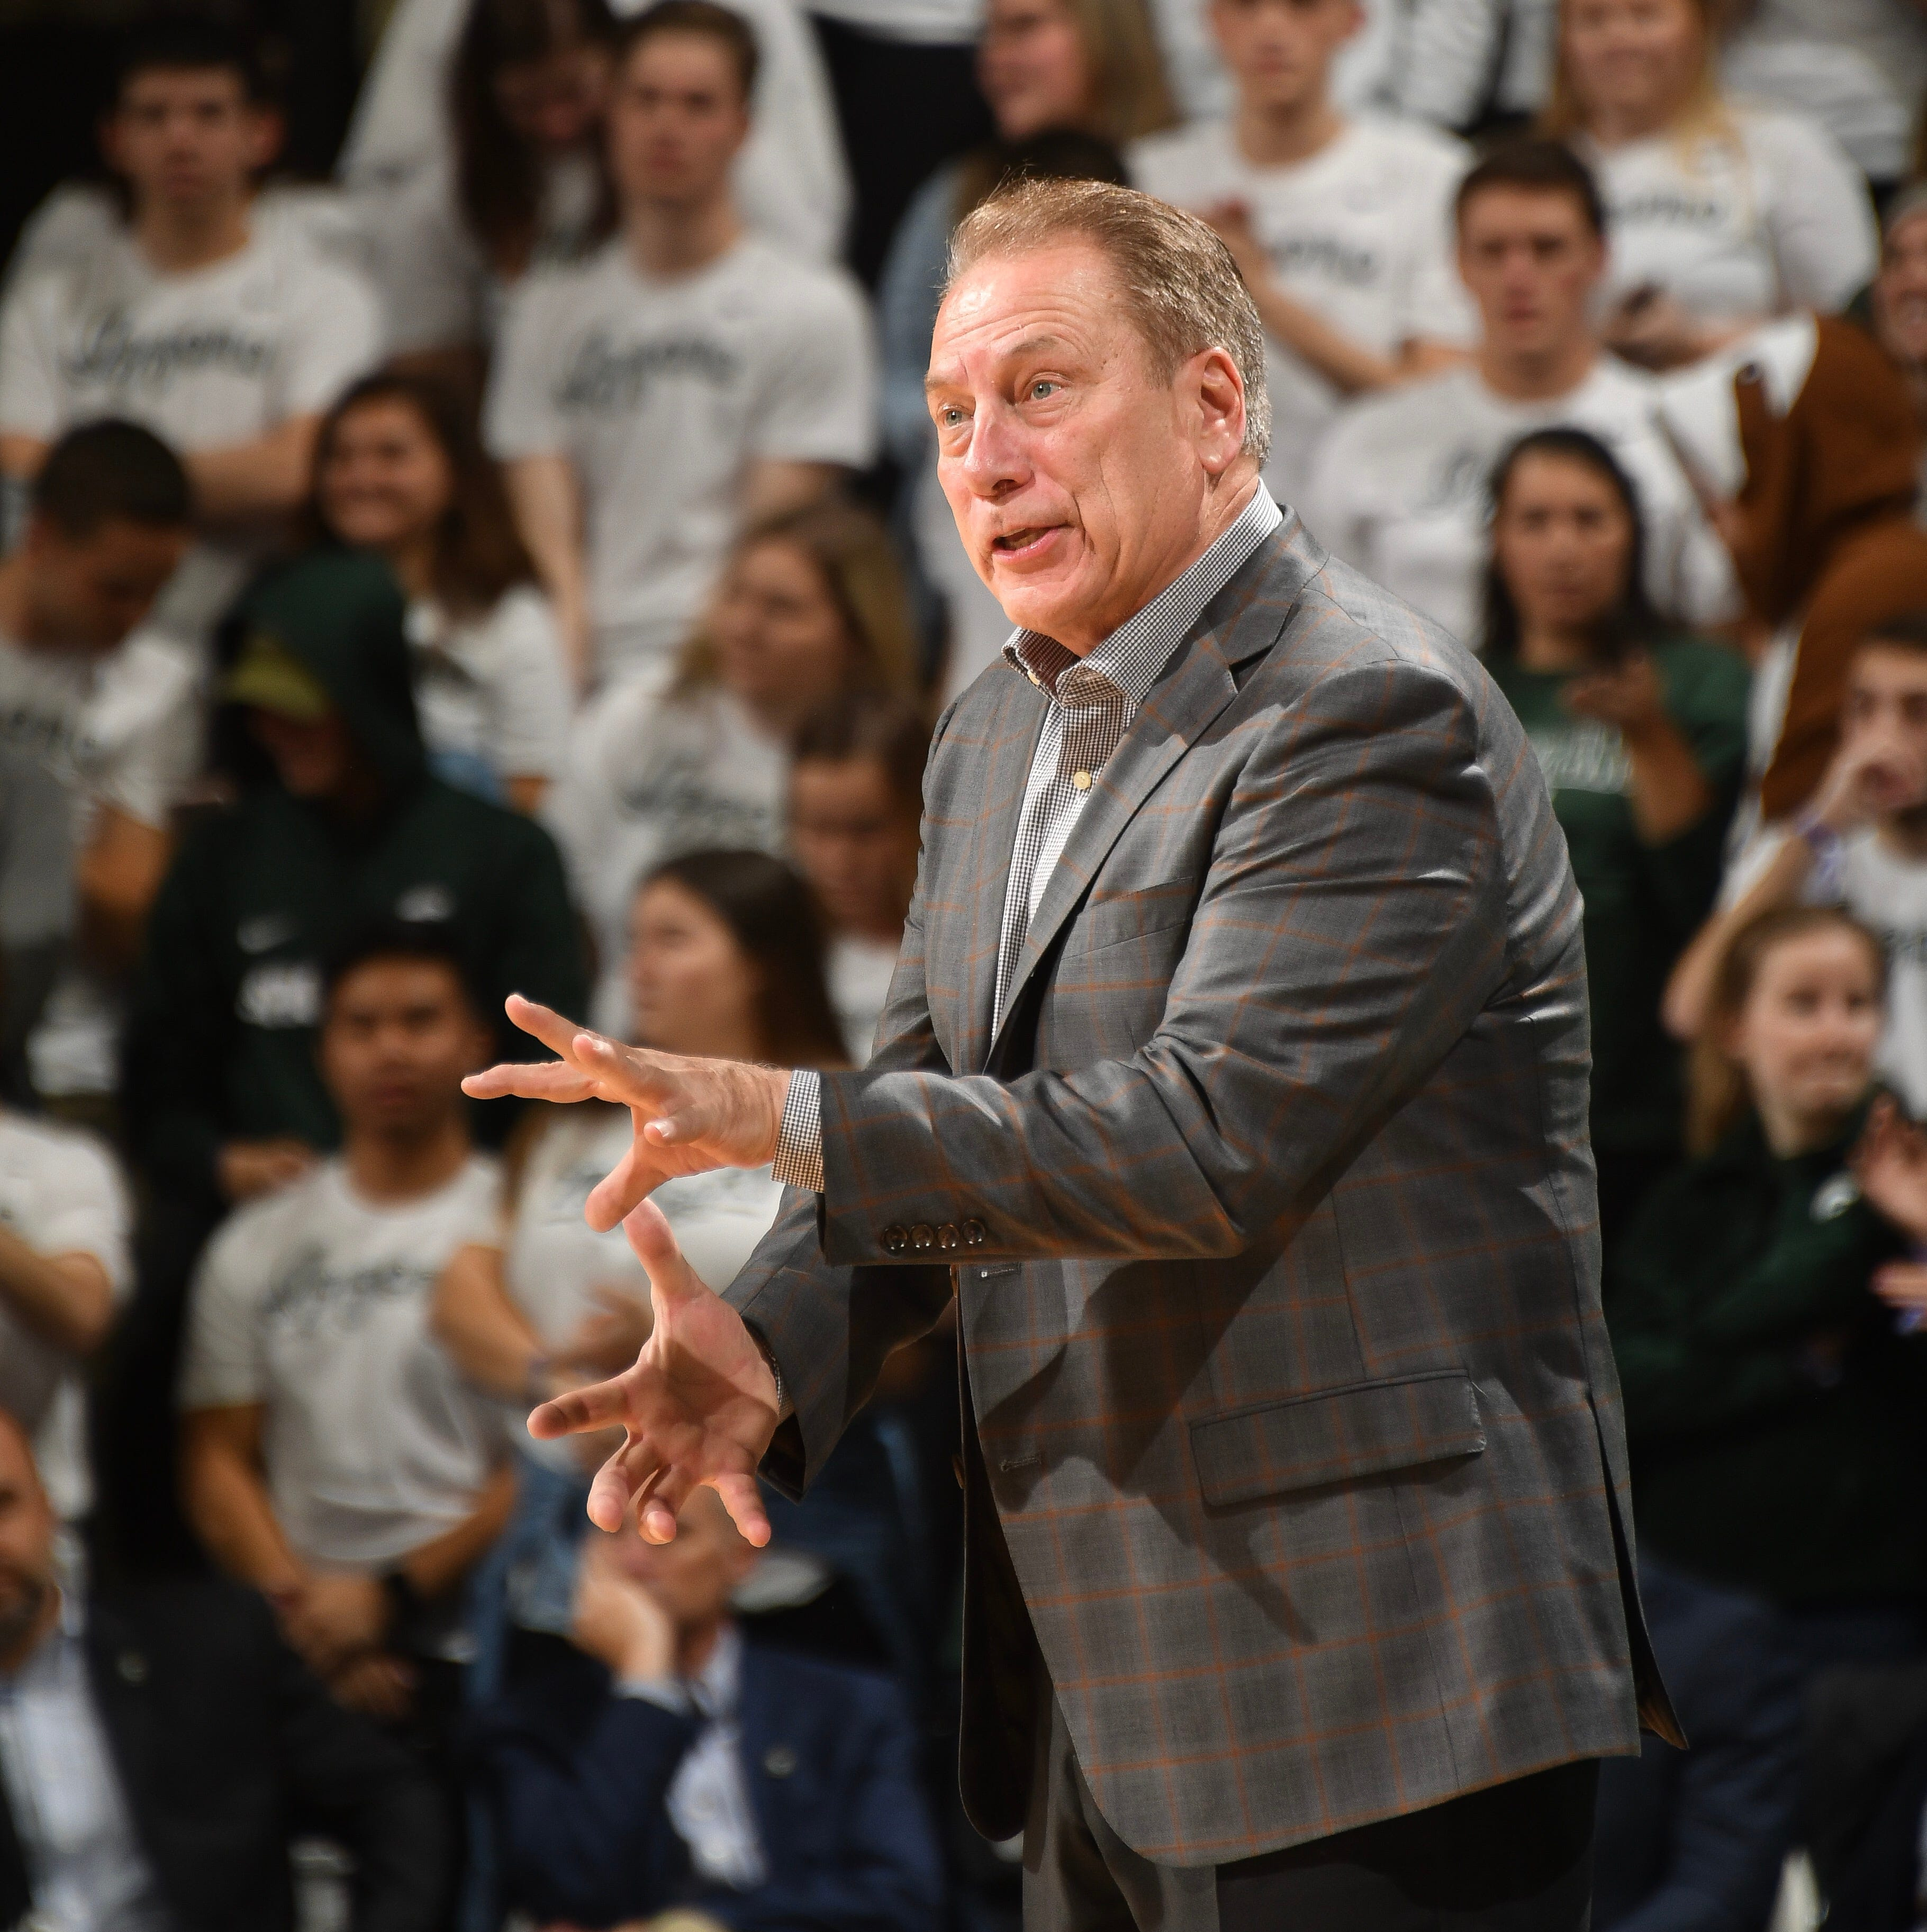 MSU's Tom Izzo blasts NCAA over 'over-legislating' by referees